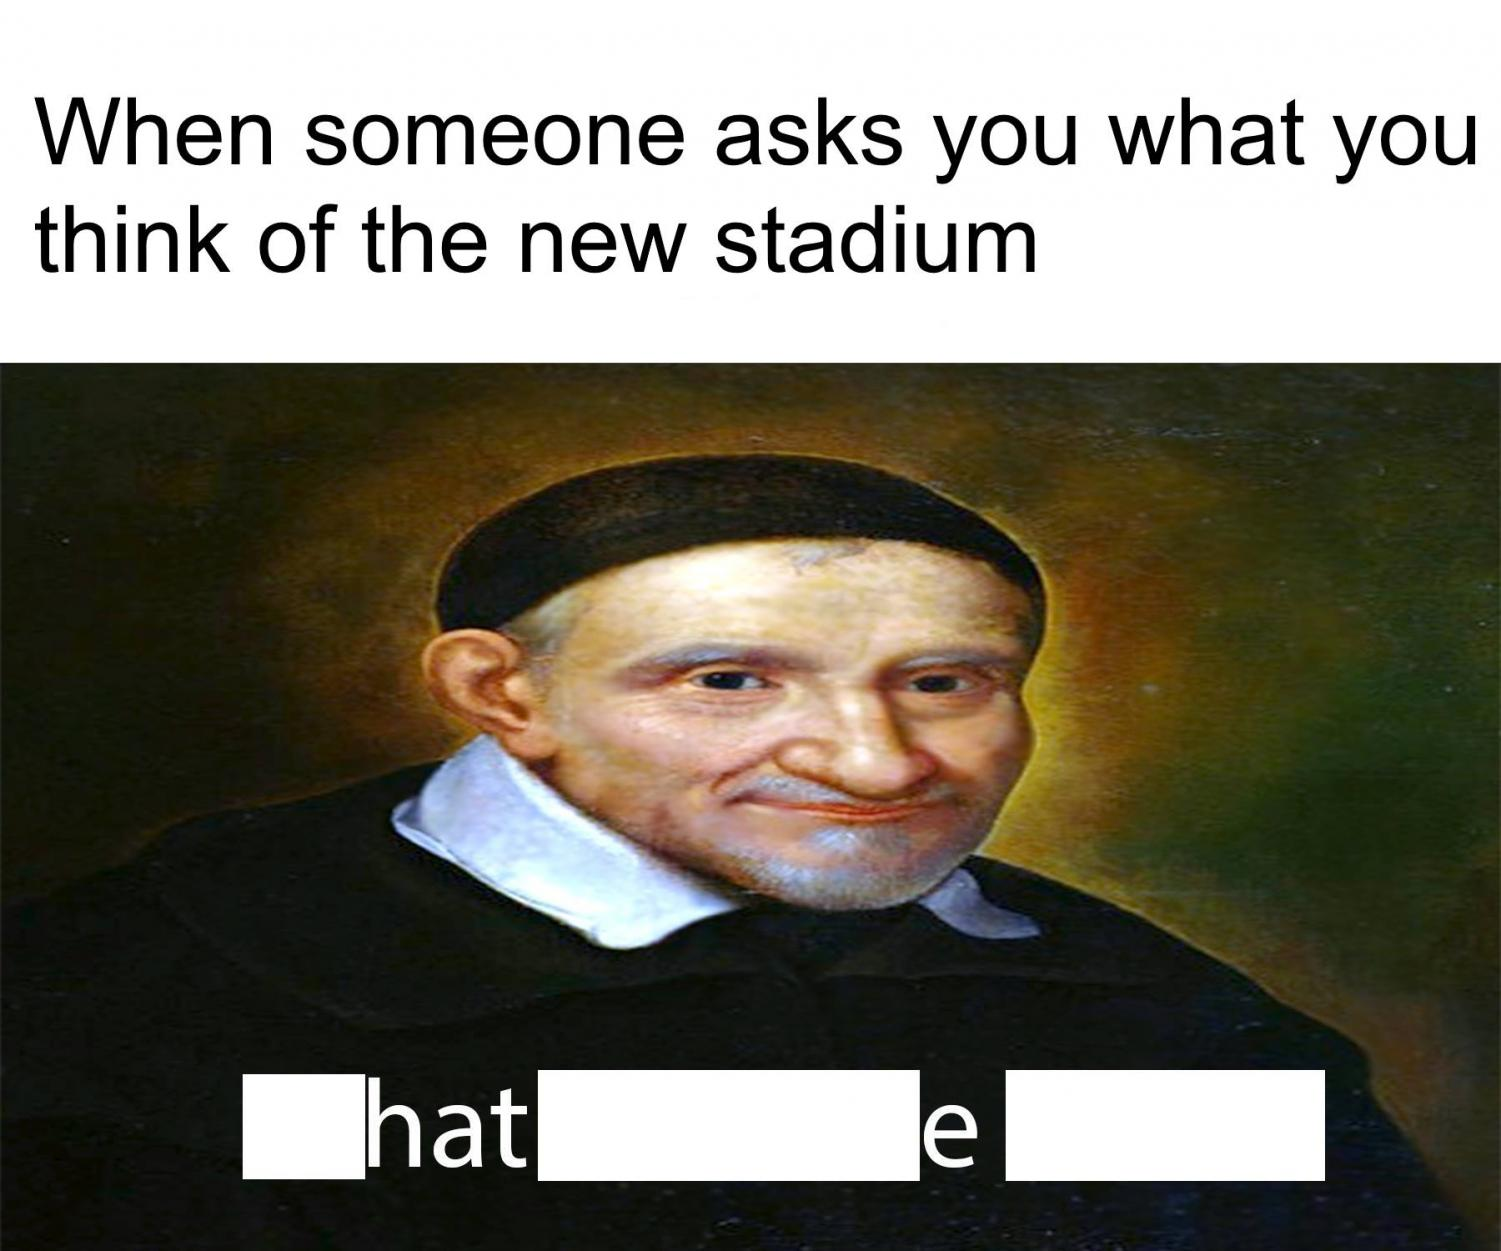 An example of one of the memes shared, using the Vincentian question to mock the arena. (Photo courtesy of Patrick Kunst)